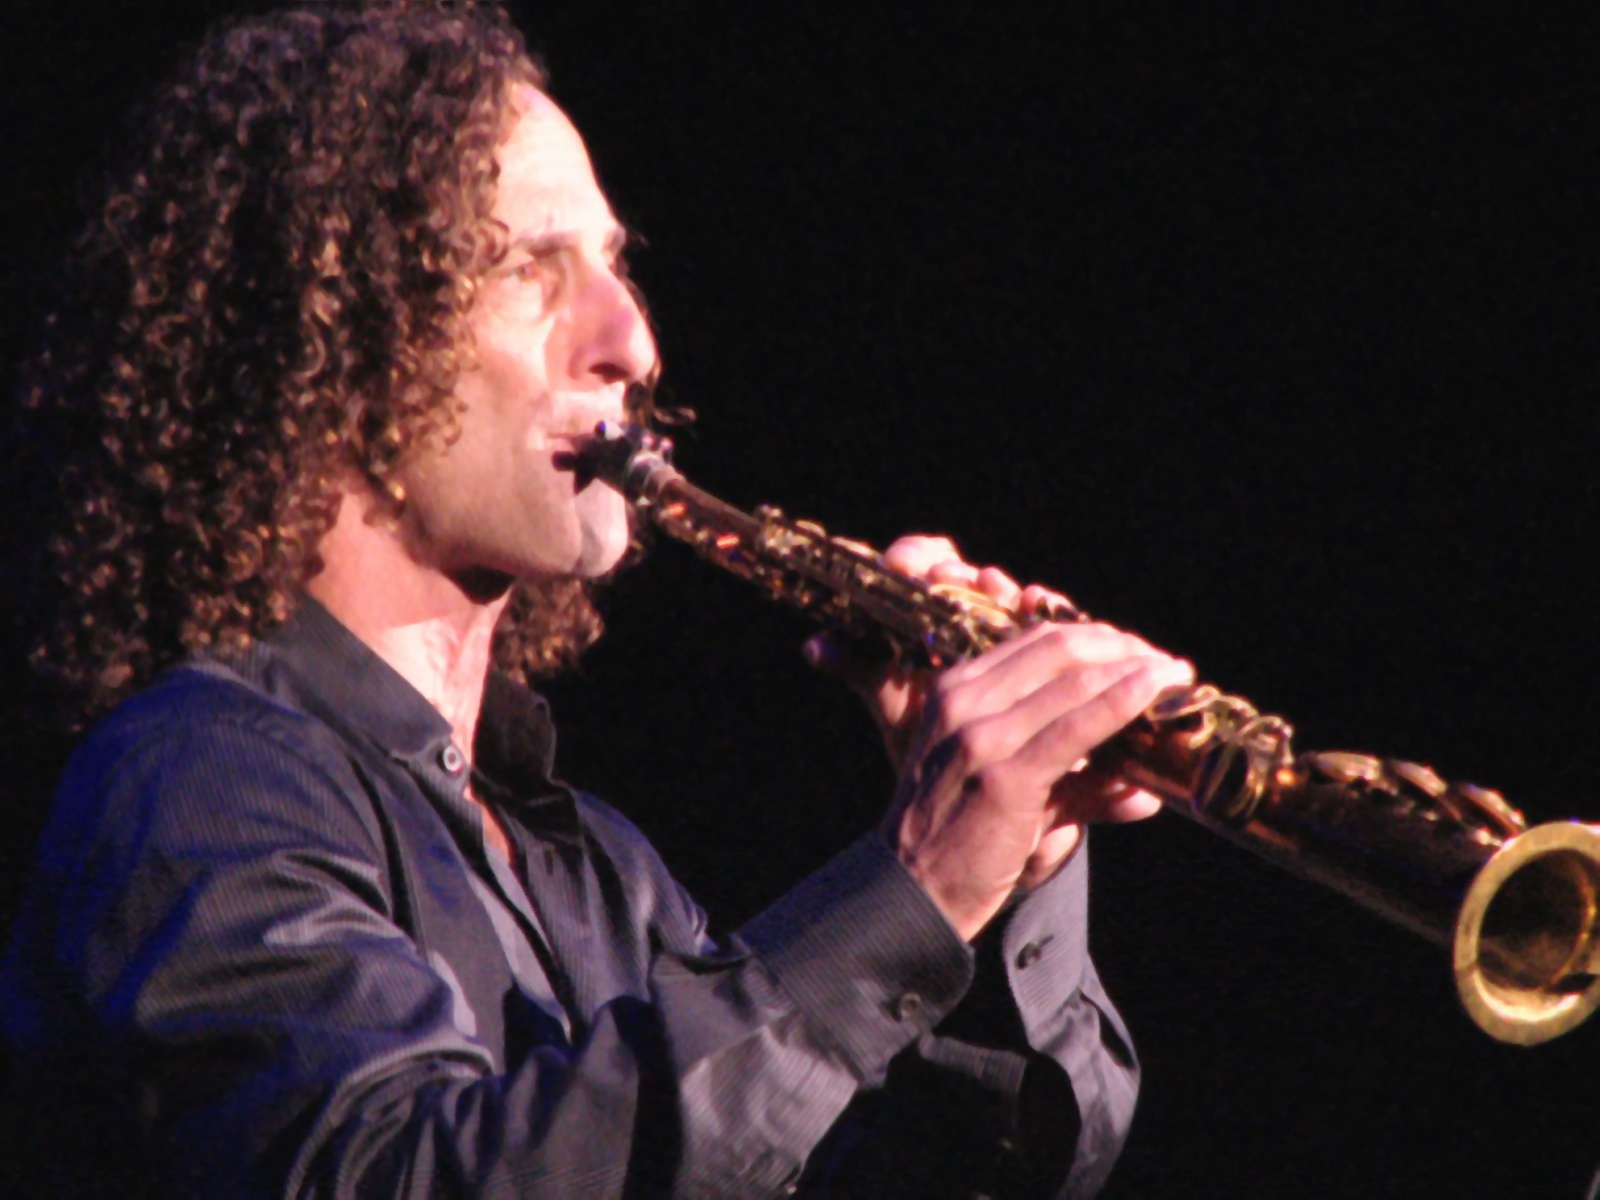 Kenny G discography - Wikipedia